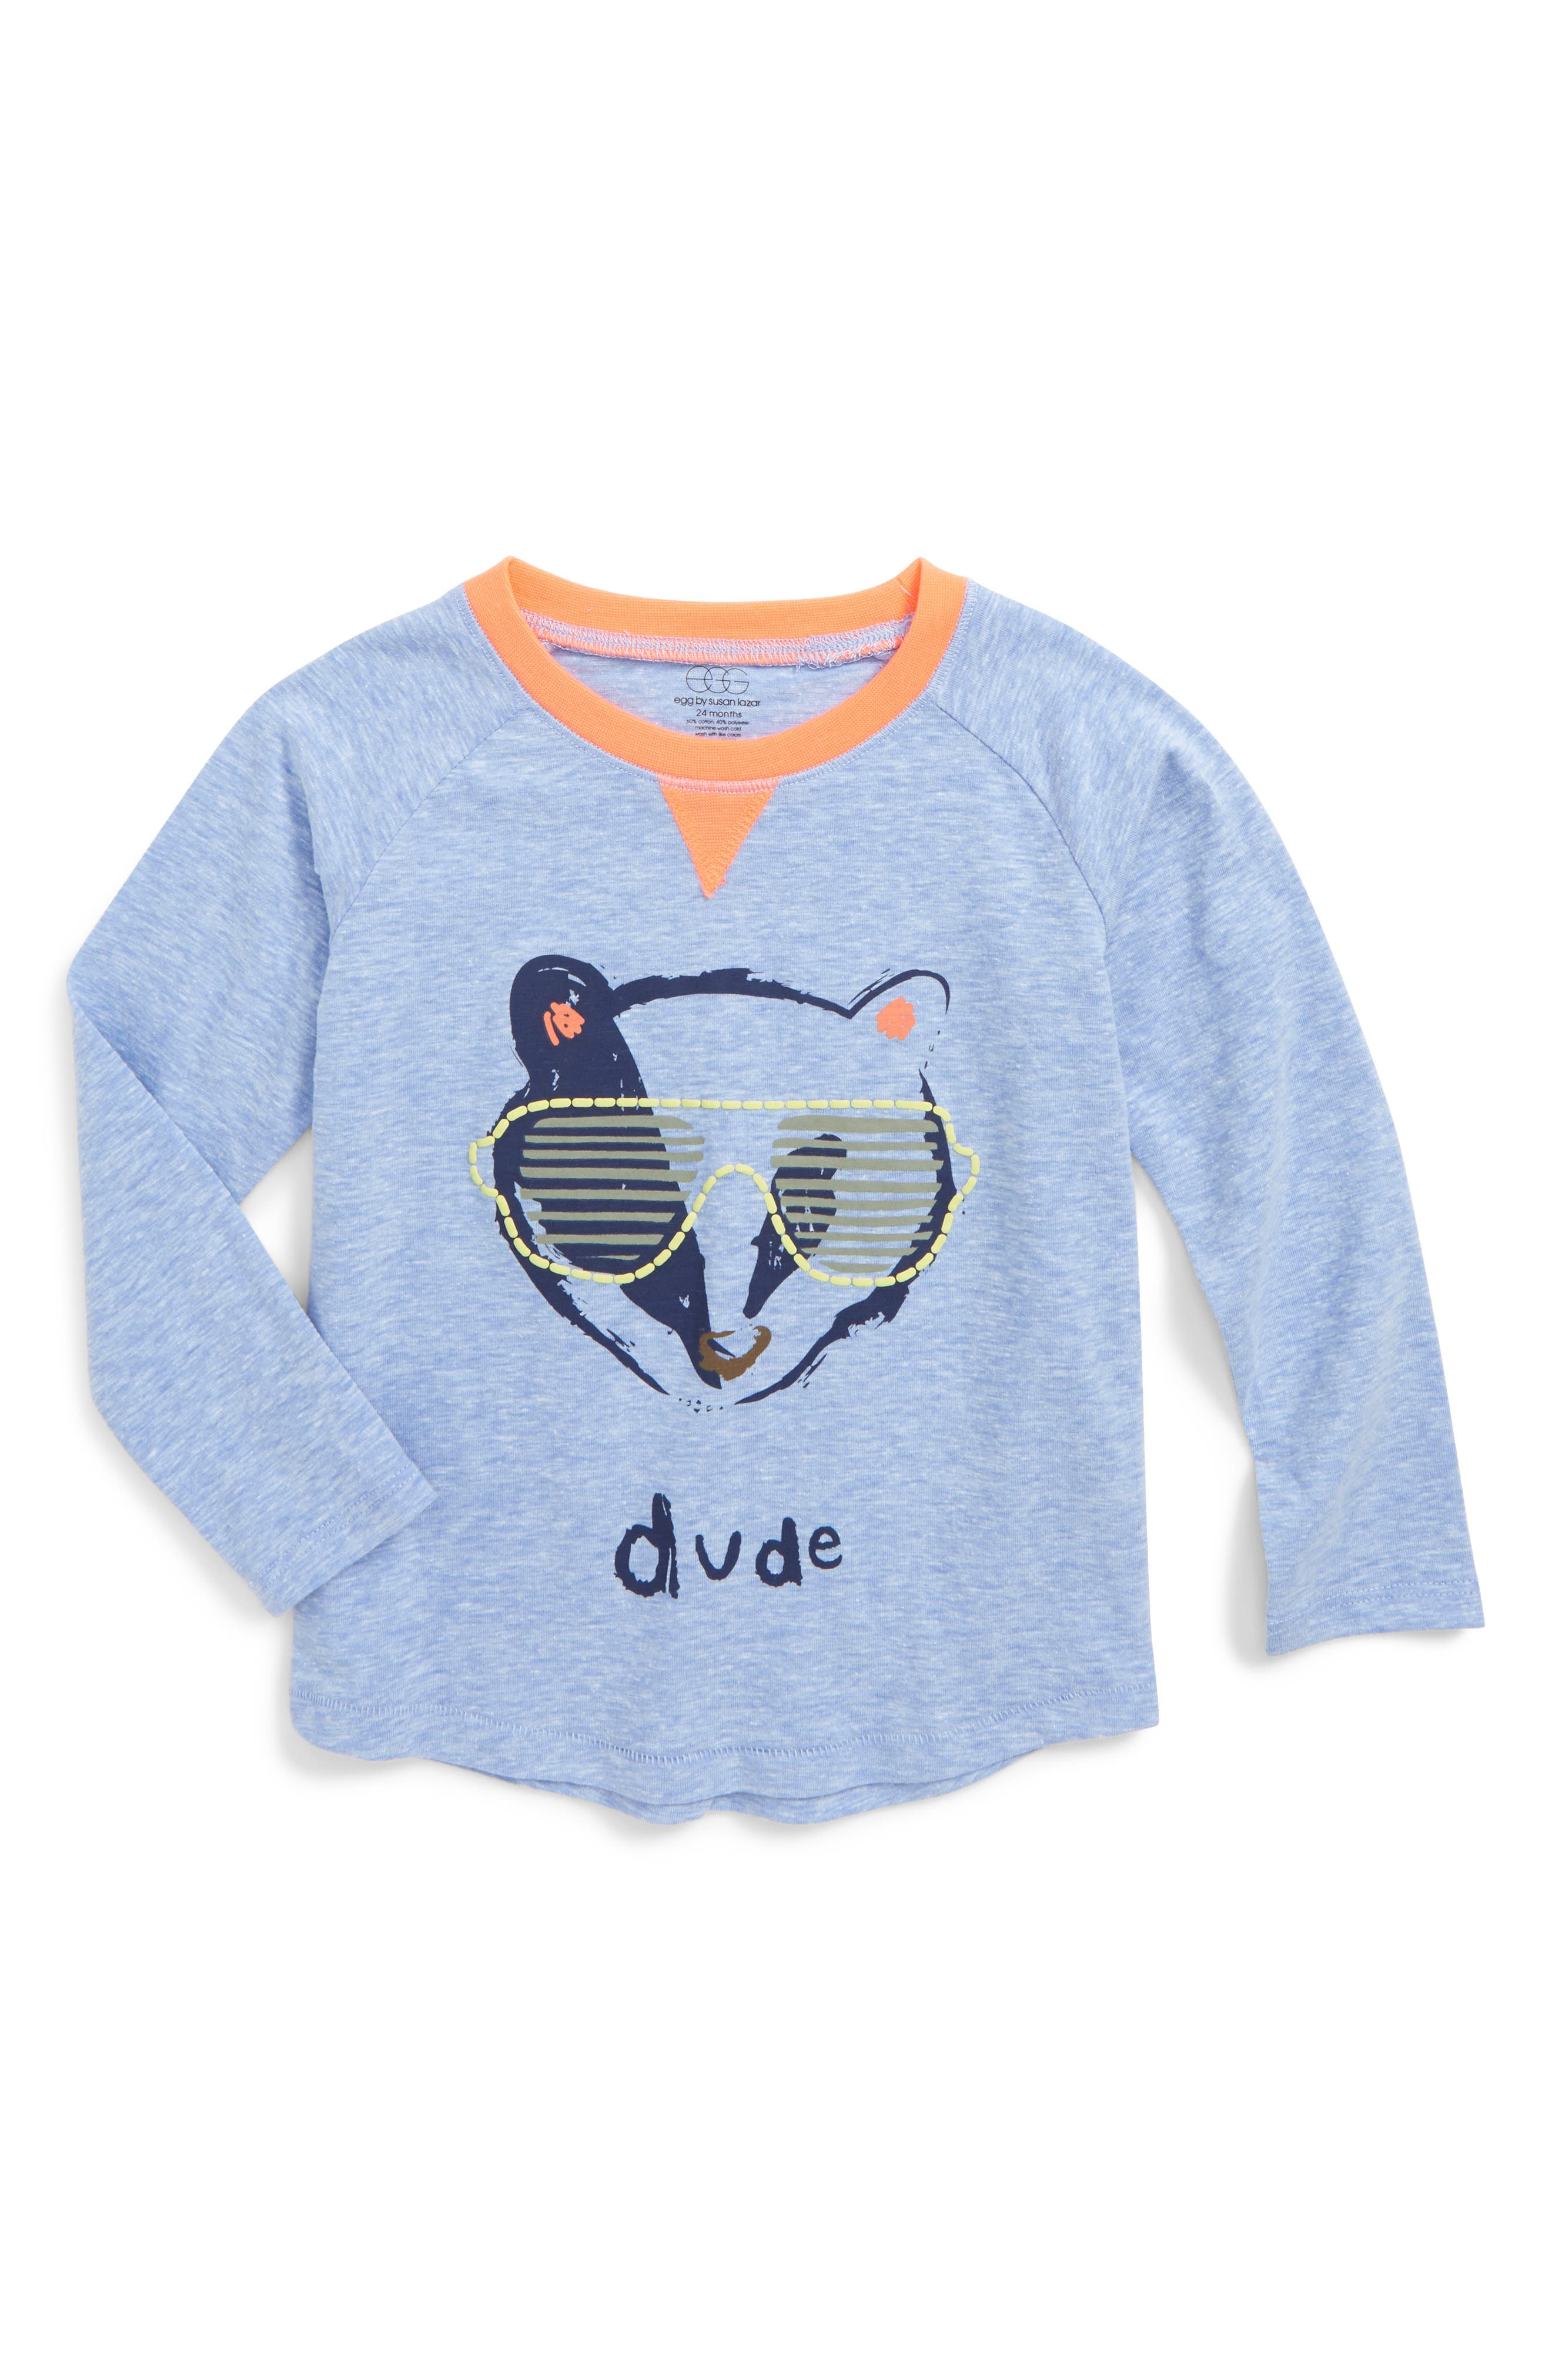 egg by susan lazar Asher Graphic T-Shirt (Baby Boys)